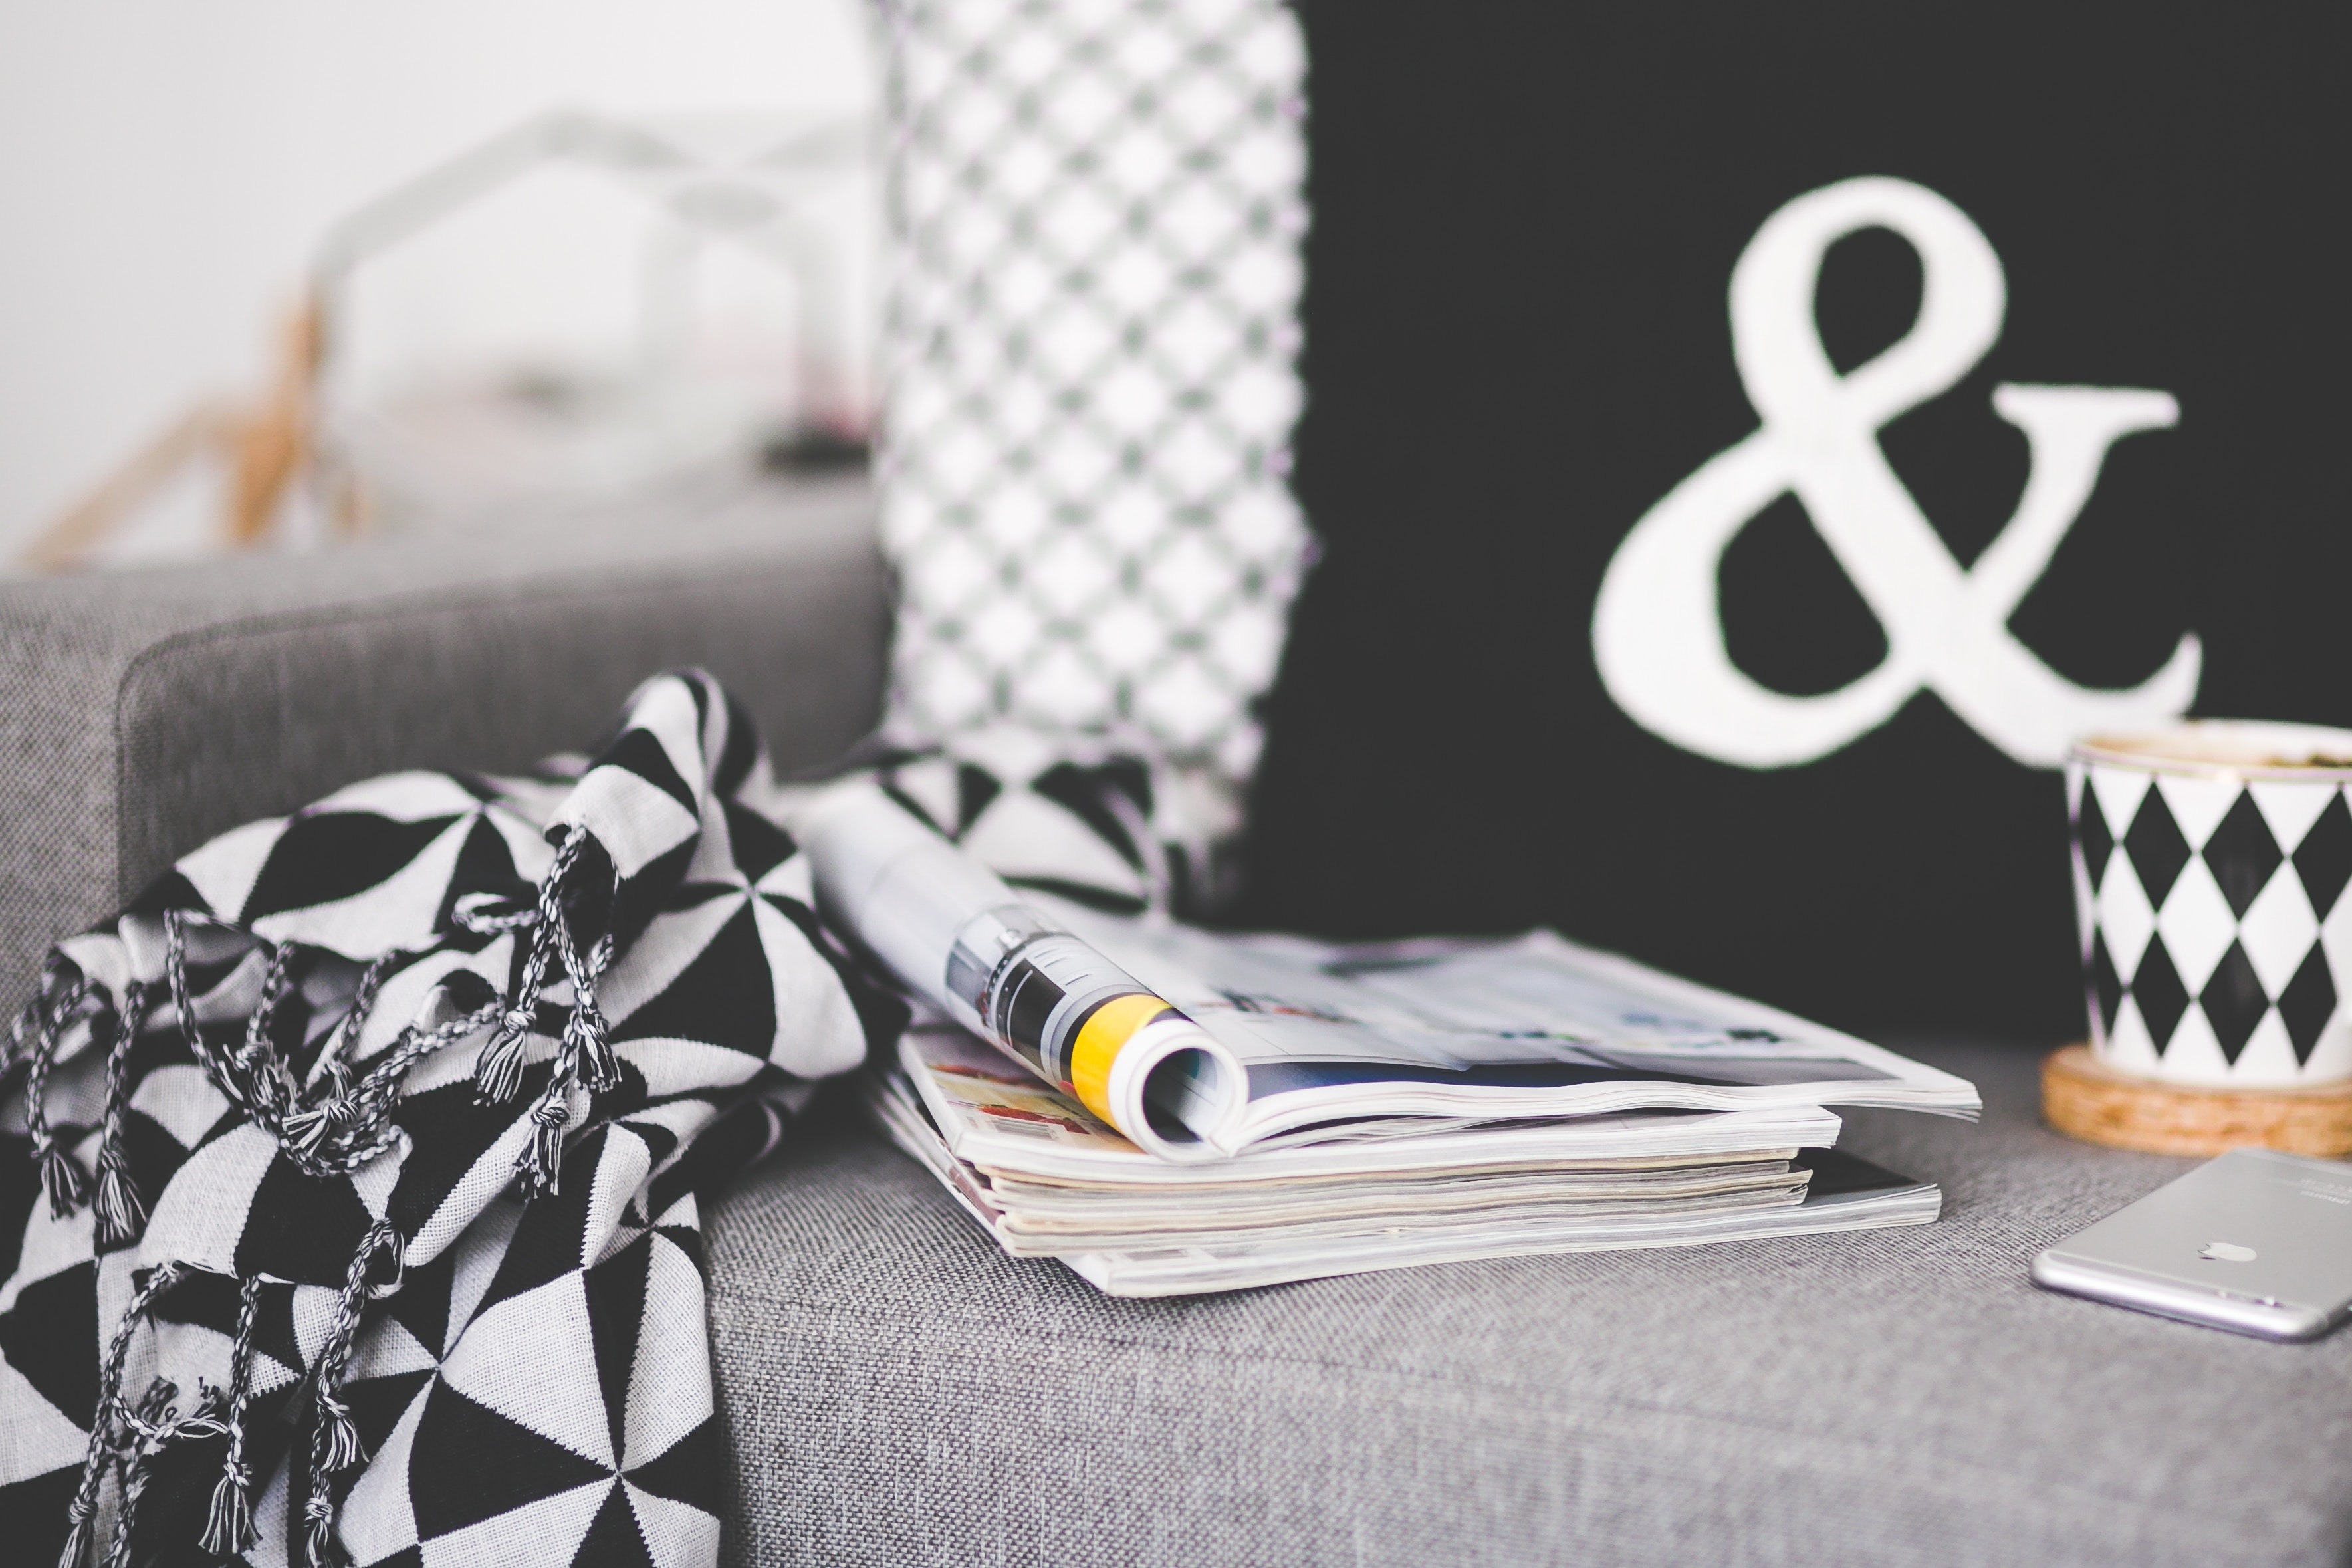 Close of magazines, mug and phone on a couch, Livingspace, Living, Live, Magazines, HQ Photo